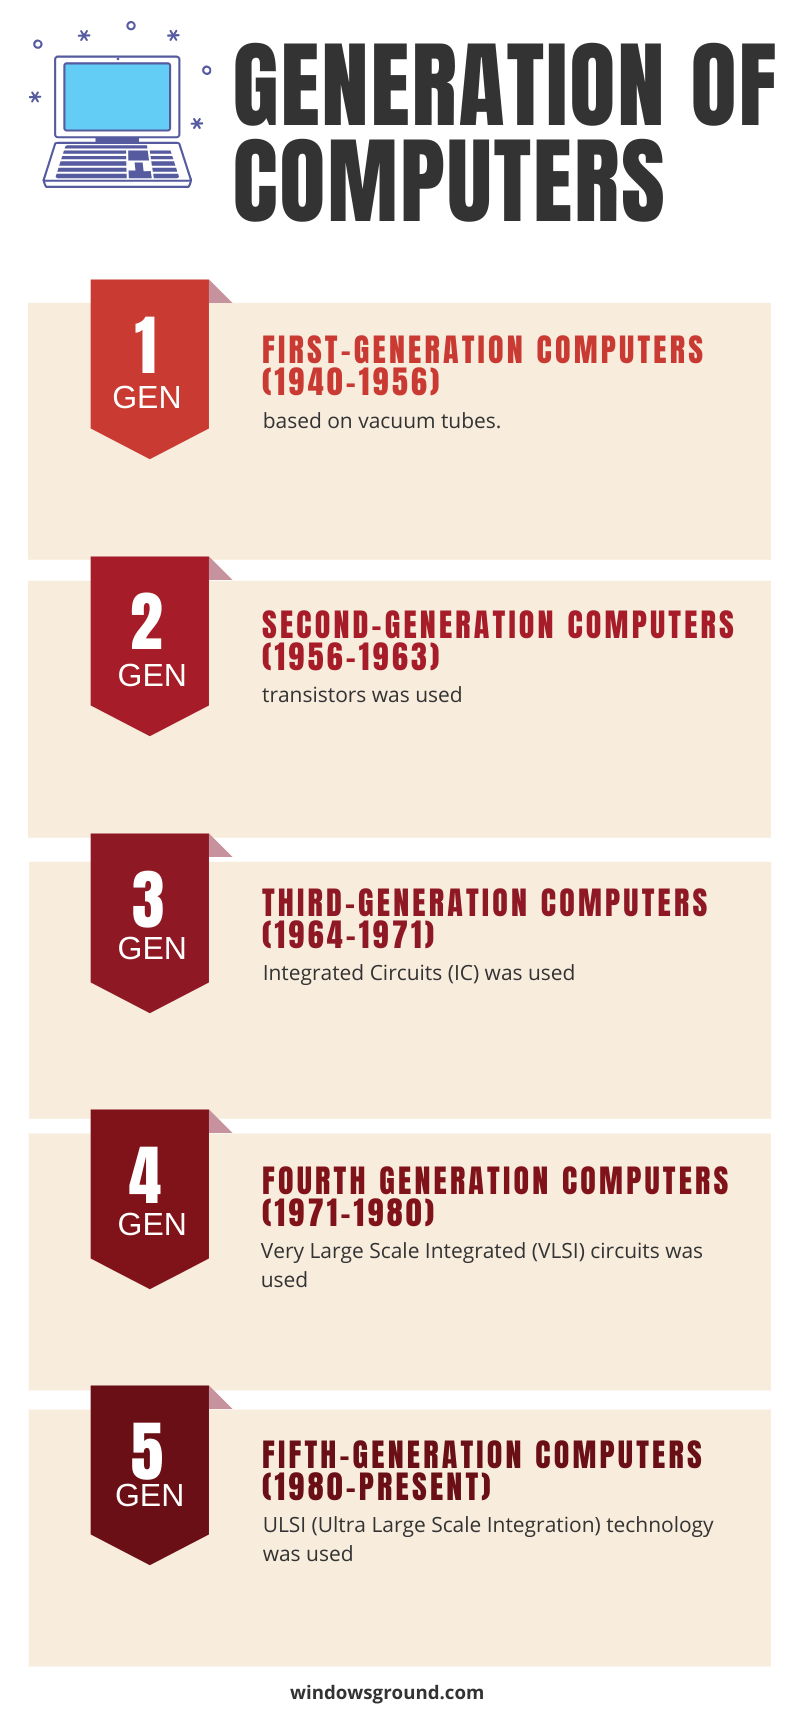 generation of computer chart images- windowsground.com